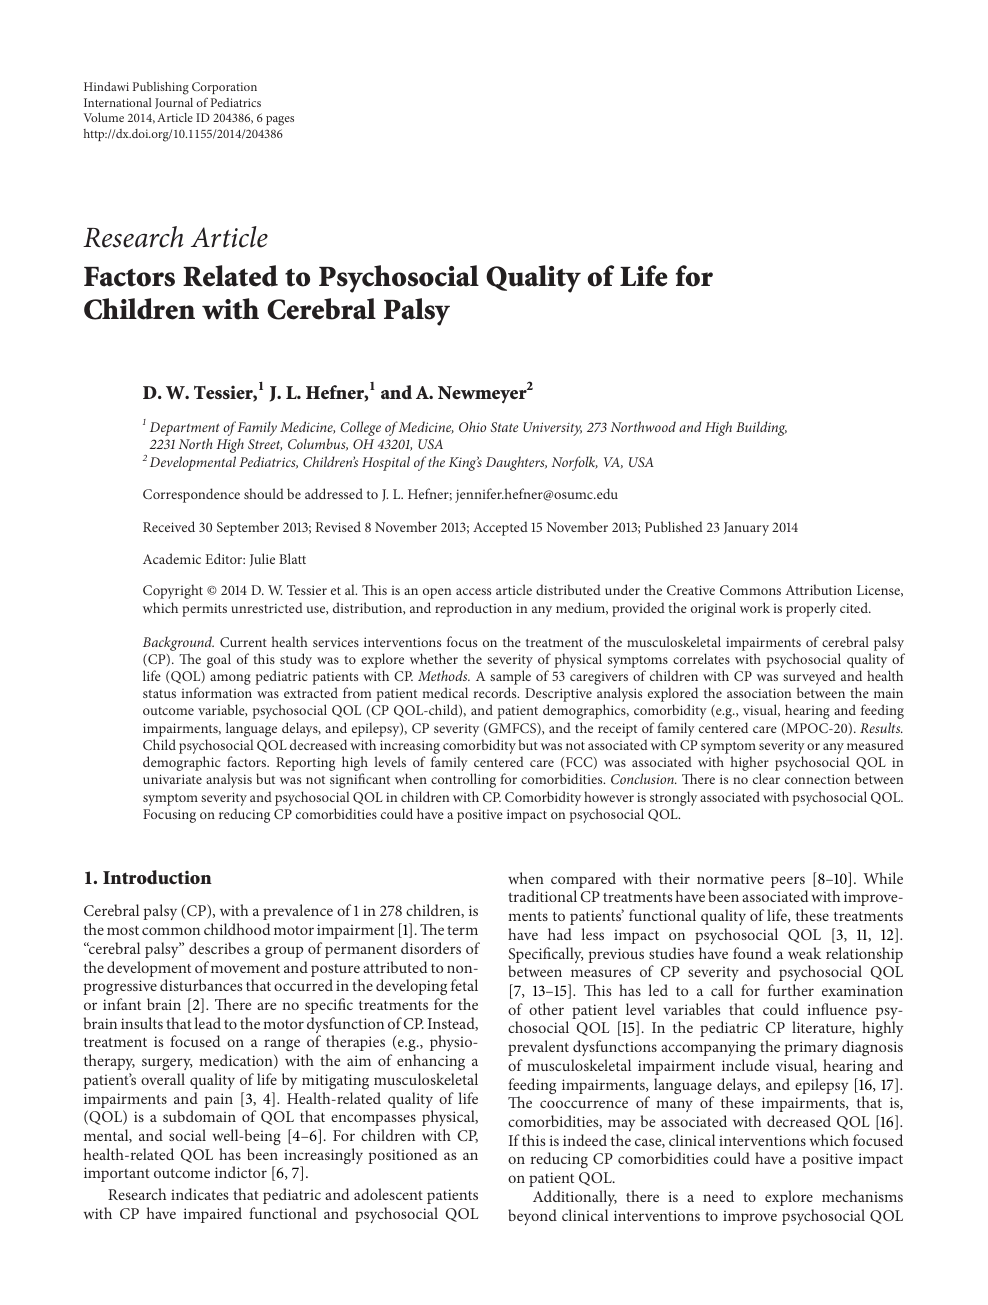 Factors Related to Psychosocial Quality of Life for Children